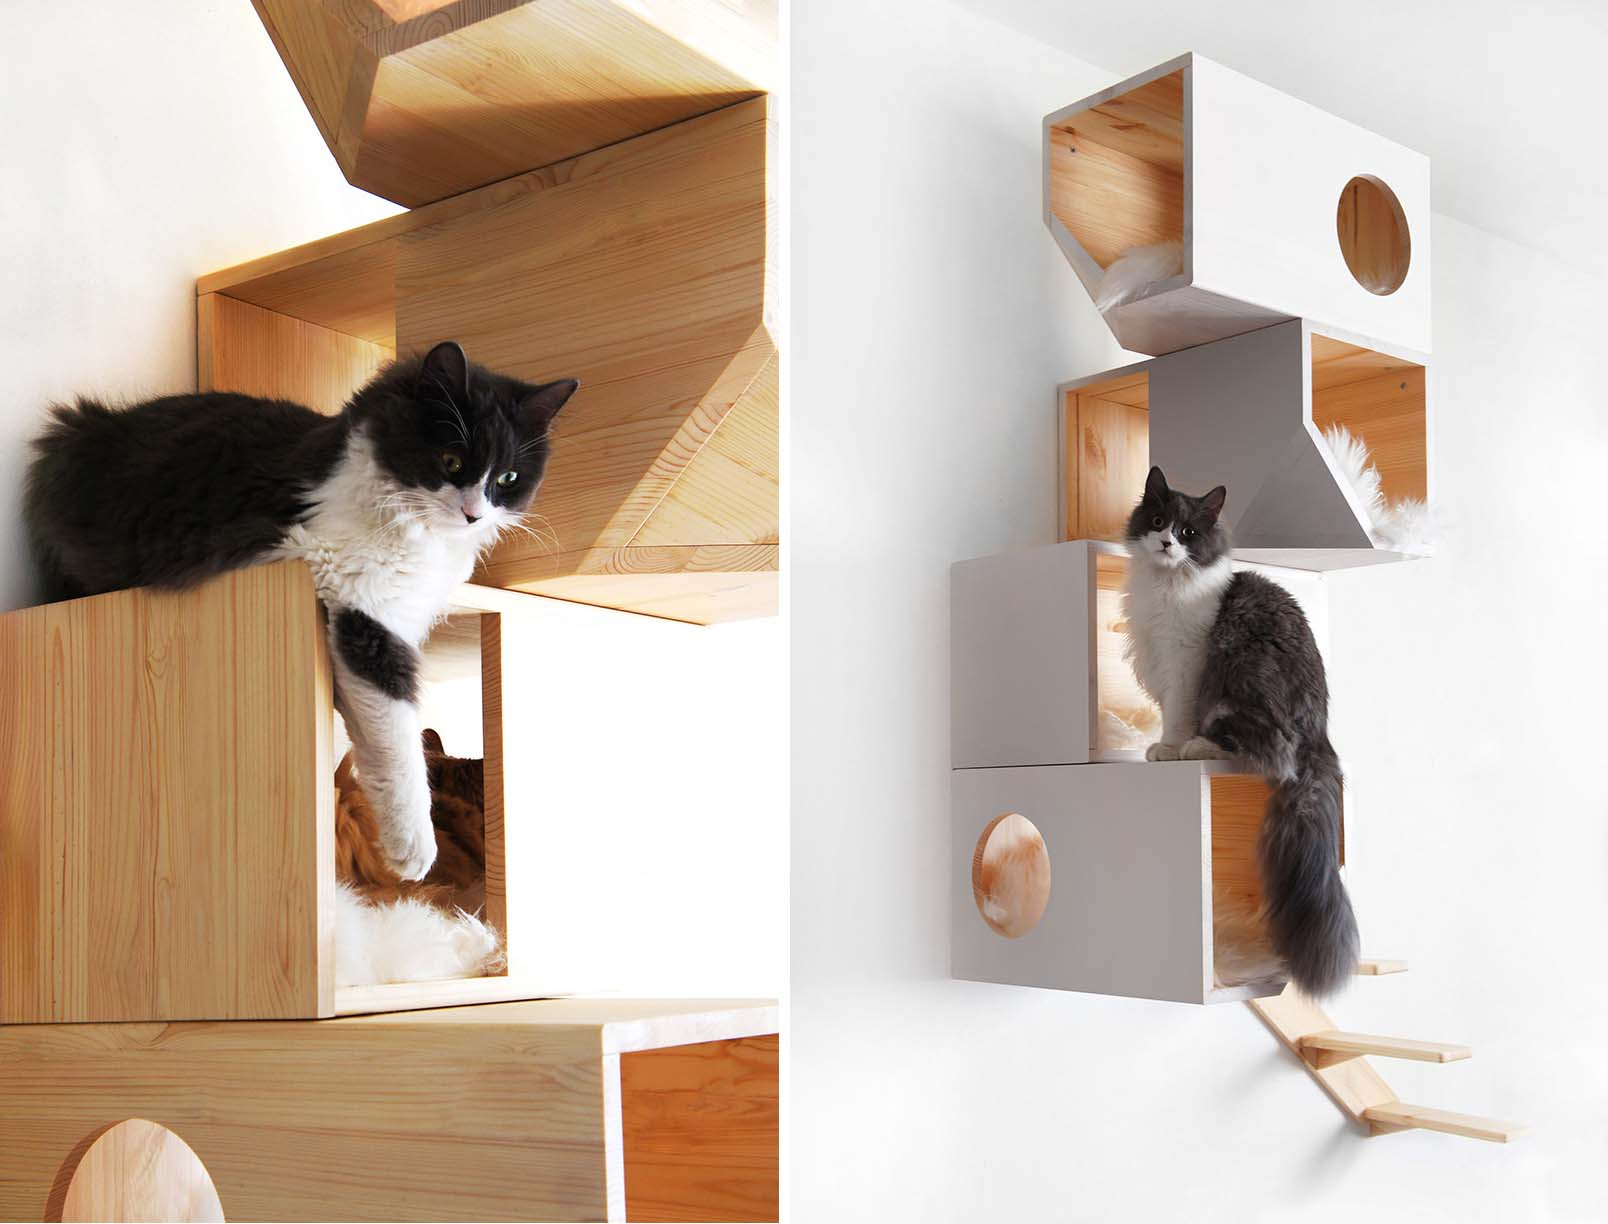 Catissa cat tree doubles as stylish wall art 6sqft - Contemporary cat furniture ideas ...